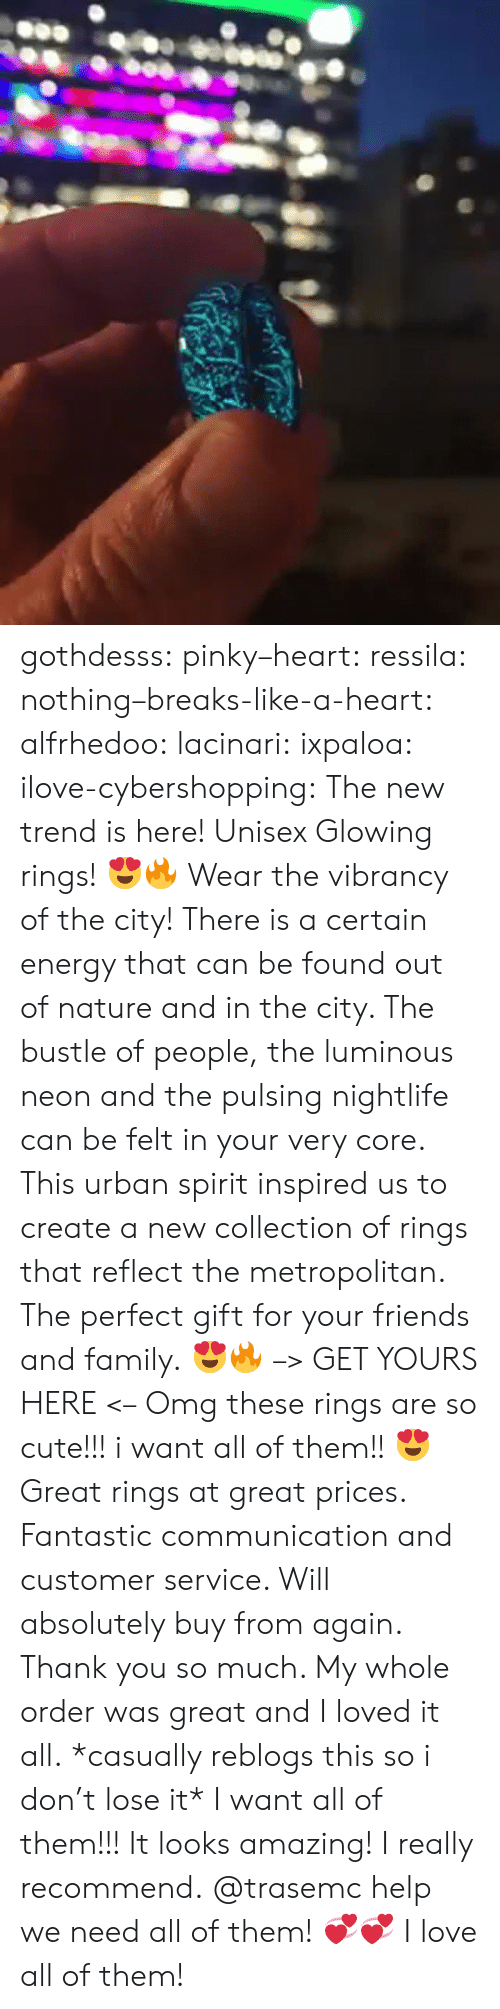 glowing: gothdesss:  pinky–heart: ressila:  nothing–breaks-like-a-heart:  alfrhedoo:  lacinari:  ixpaloa:  ilove-cybershopping:  The new trend is here! Unisex Glowing rings! 😍🔥 Wear the vibrancy of the city! There is a certain energy that can be found out of nature and in the city. The bustle of people, the luminous neon and the pulsing nightlife can be felt in your very core. This urban spirit inspired us to create a new collection of rings that reflect the metropolitan. The perfect gift for your friends and family. 😍🔥 –> GET YOURS HERE <–  Omg these rings are so cute!!! i want all of them!! 😍  Great rings at great prices. Fantastic communication and customer service. Will absolutely buy from again. Thank you so much. My whole order was great and I loved it all.  *casually reblogs this so i don't lose it*  I want all of them!!!  It looks amazing! I really recommend.  @trasemc help we need all of them! 💞💞  I love all of them!